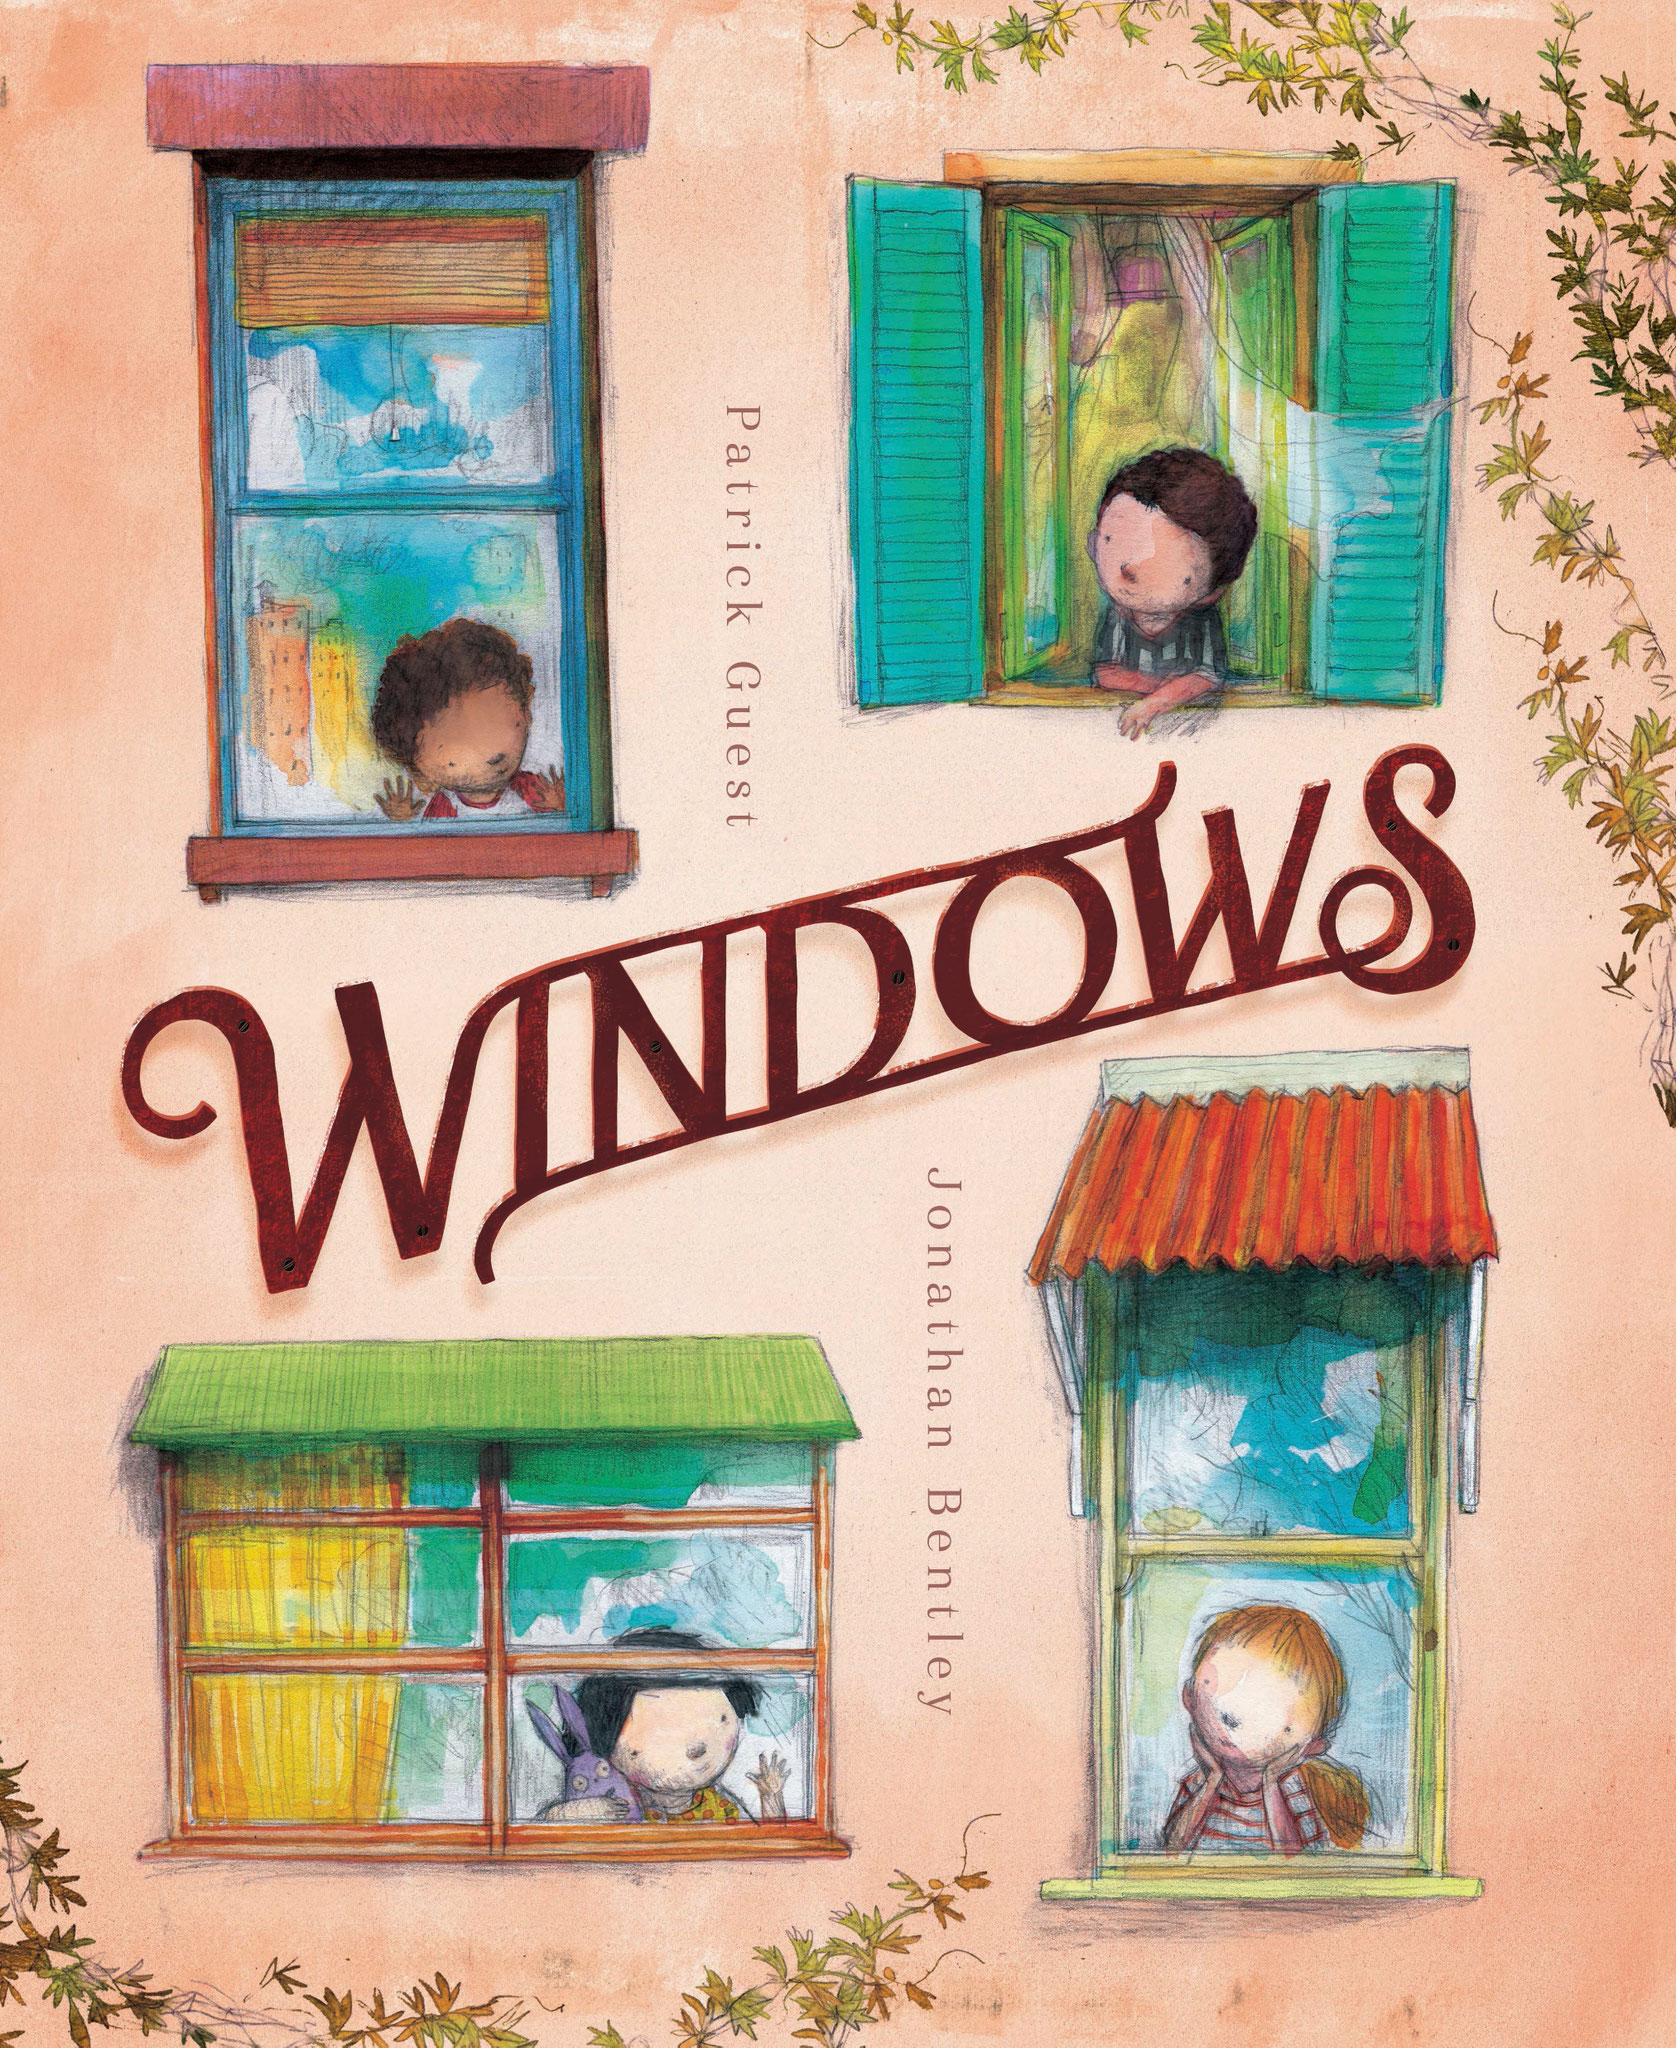 Windows a new book by Patrick and Jonathan Bentley - Available July - Click Here for more images of this exciting new book